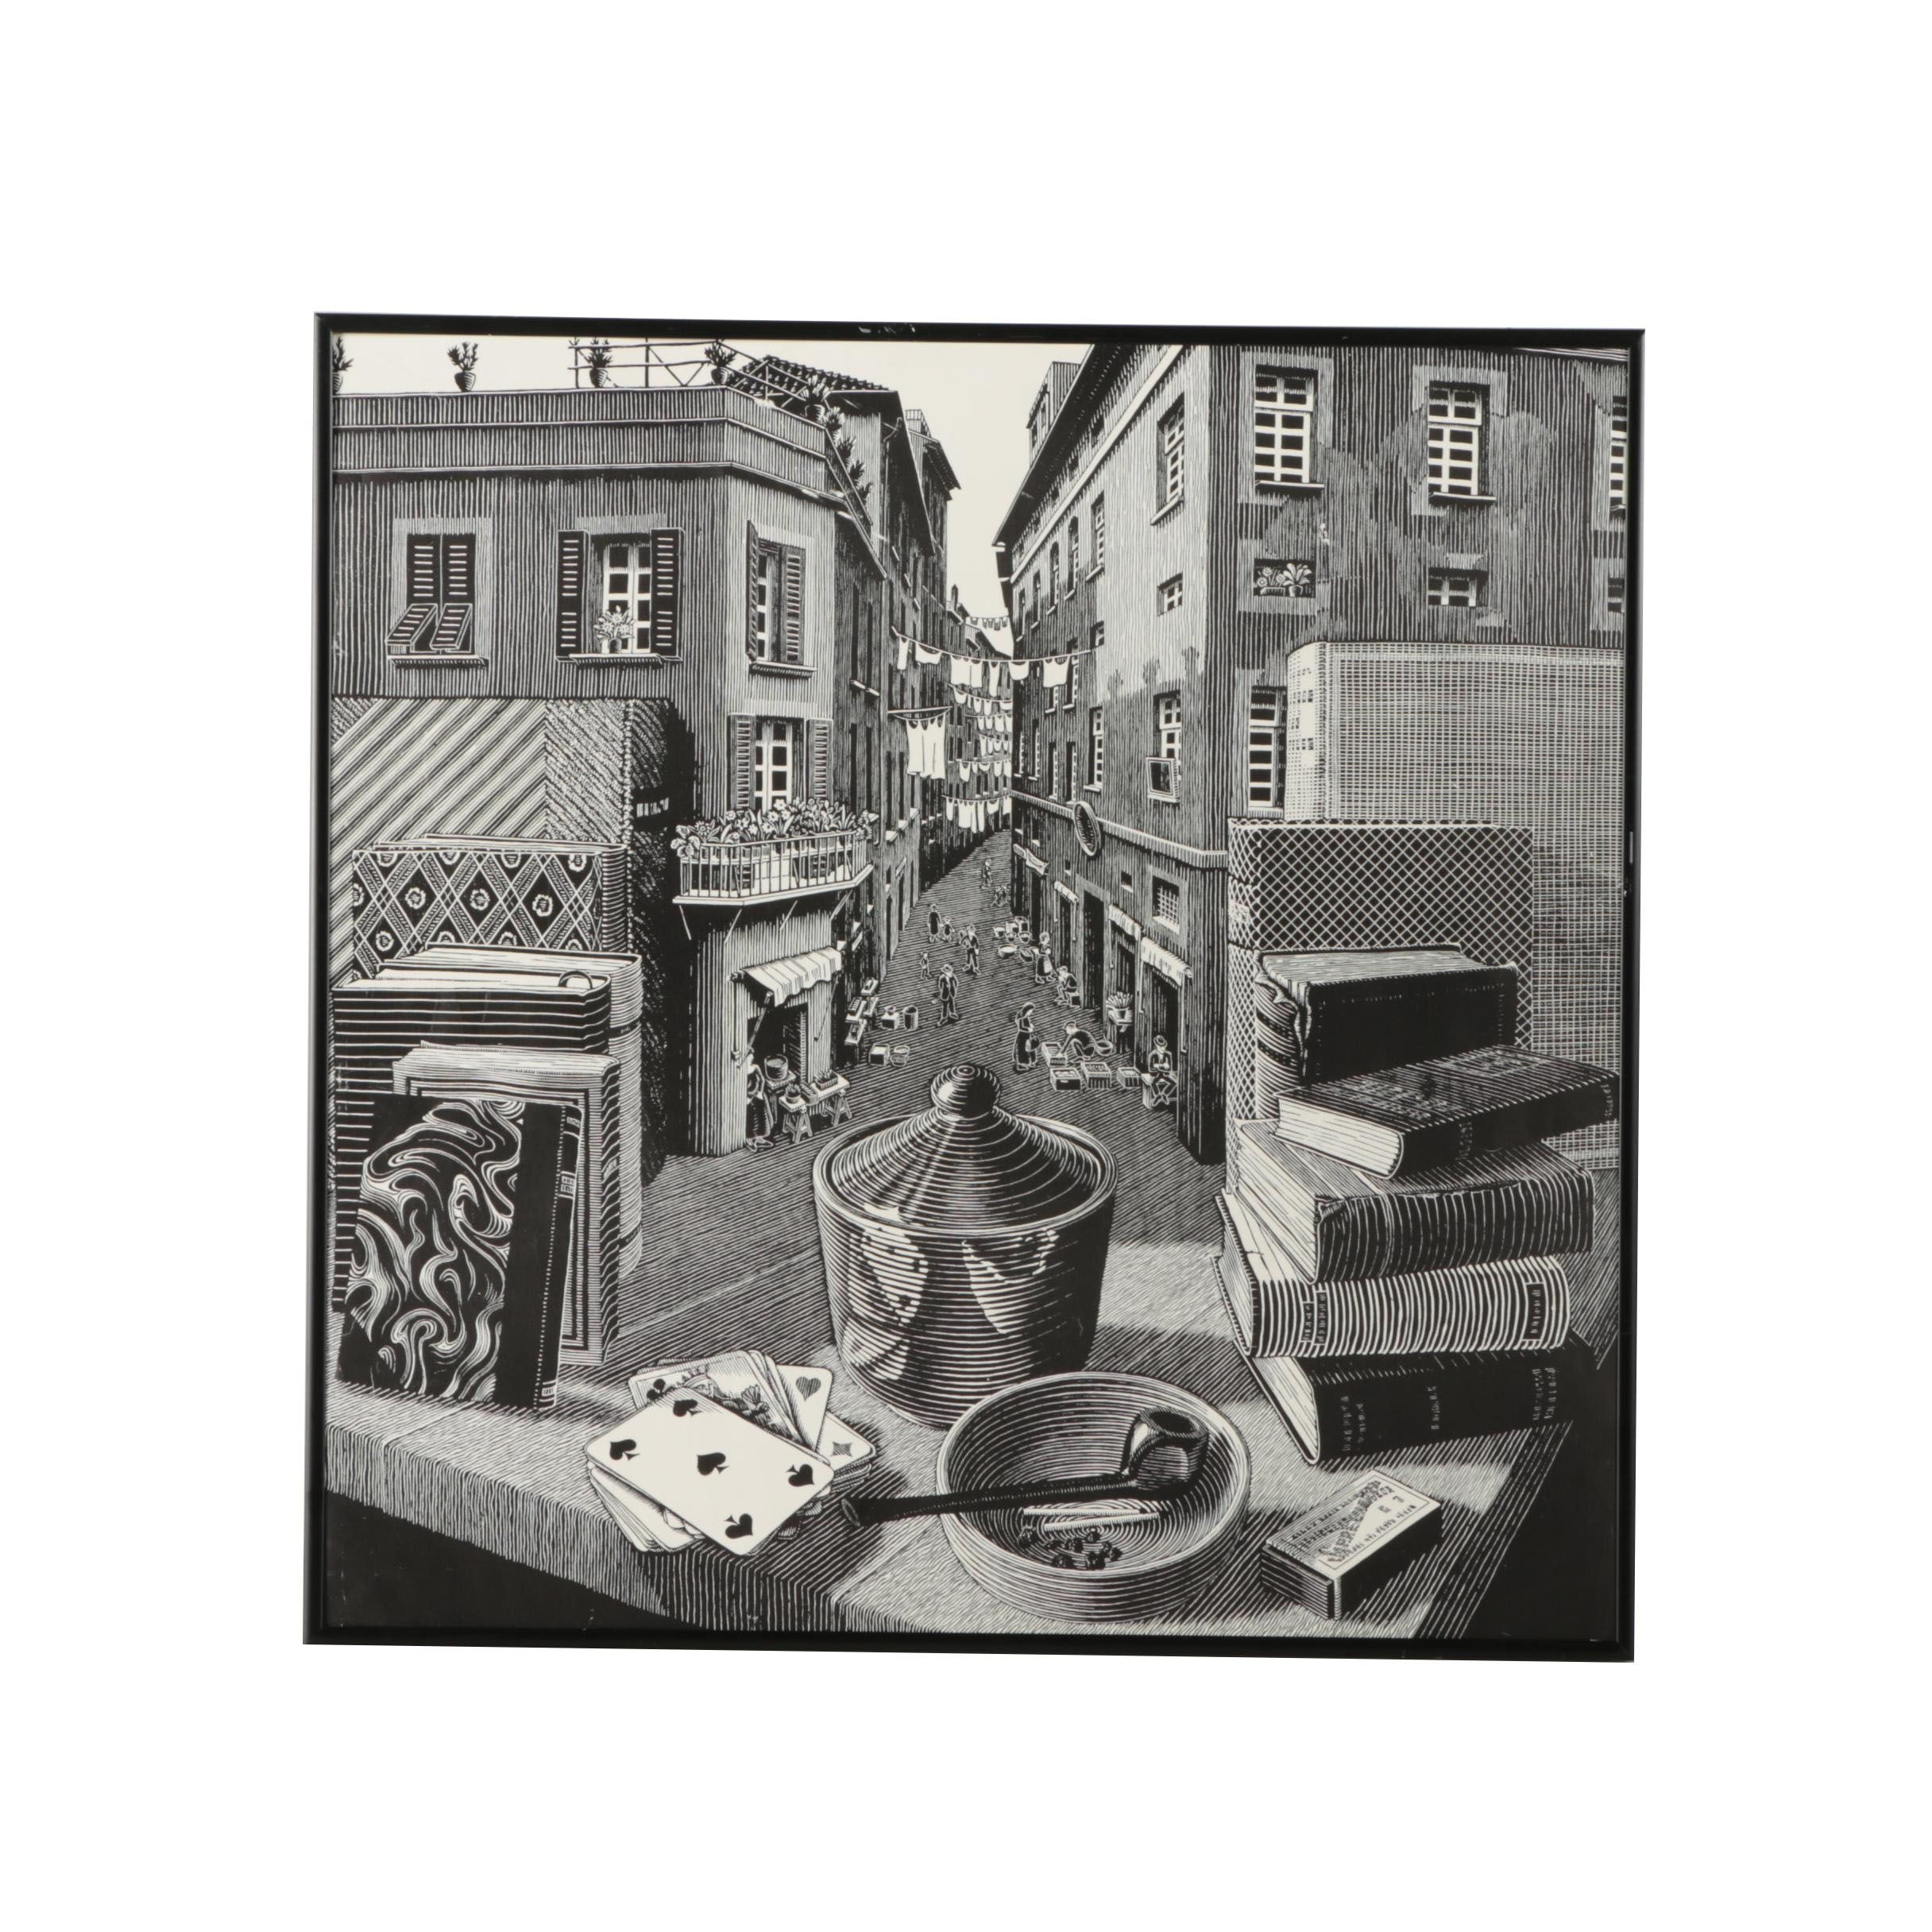 """Reproduction Lithograph after """"Still Life and Street"""" by M.C. Escher"""